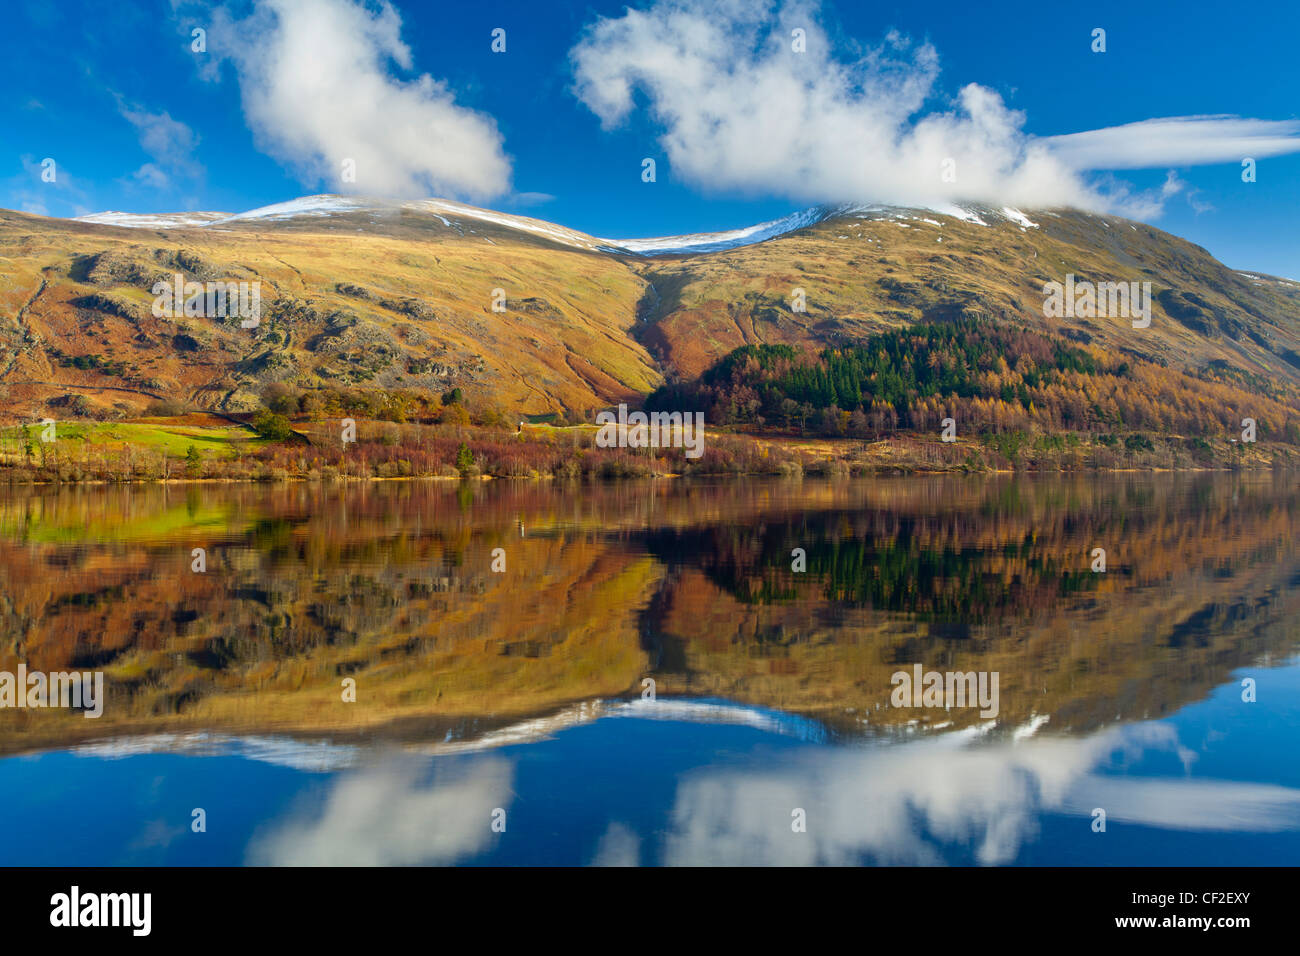 Lakeland hills reflected upon the still face of the Thirlmere Reservoir in the Lake District National Park. - Stock Image